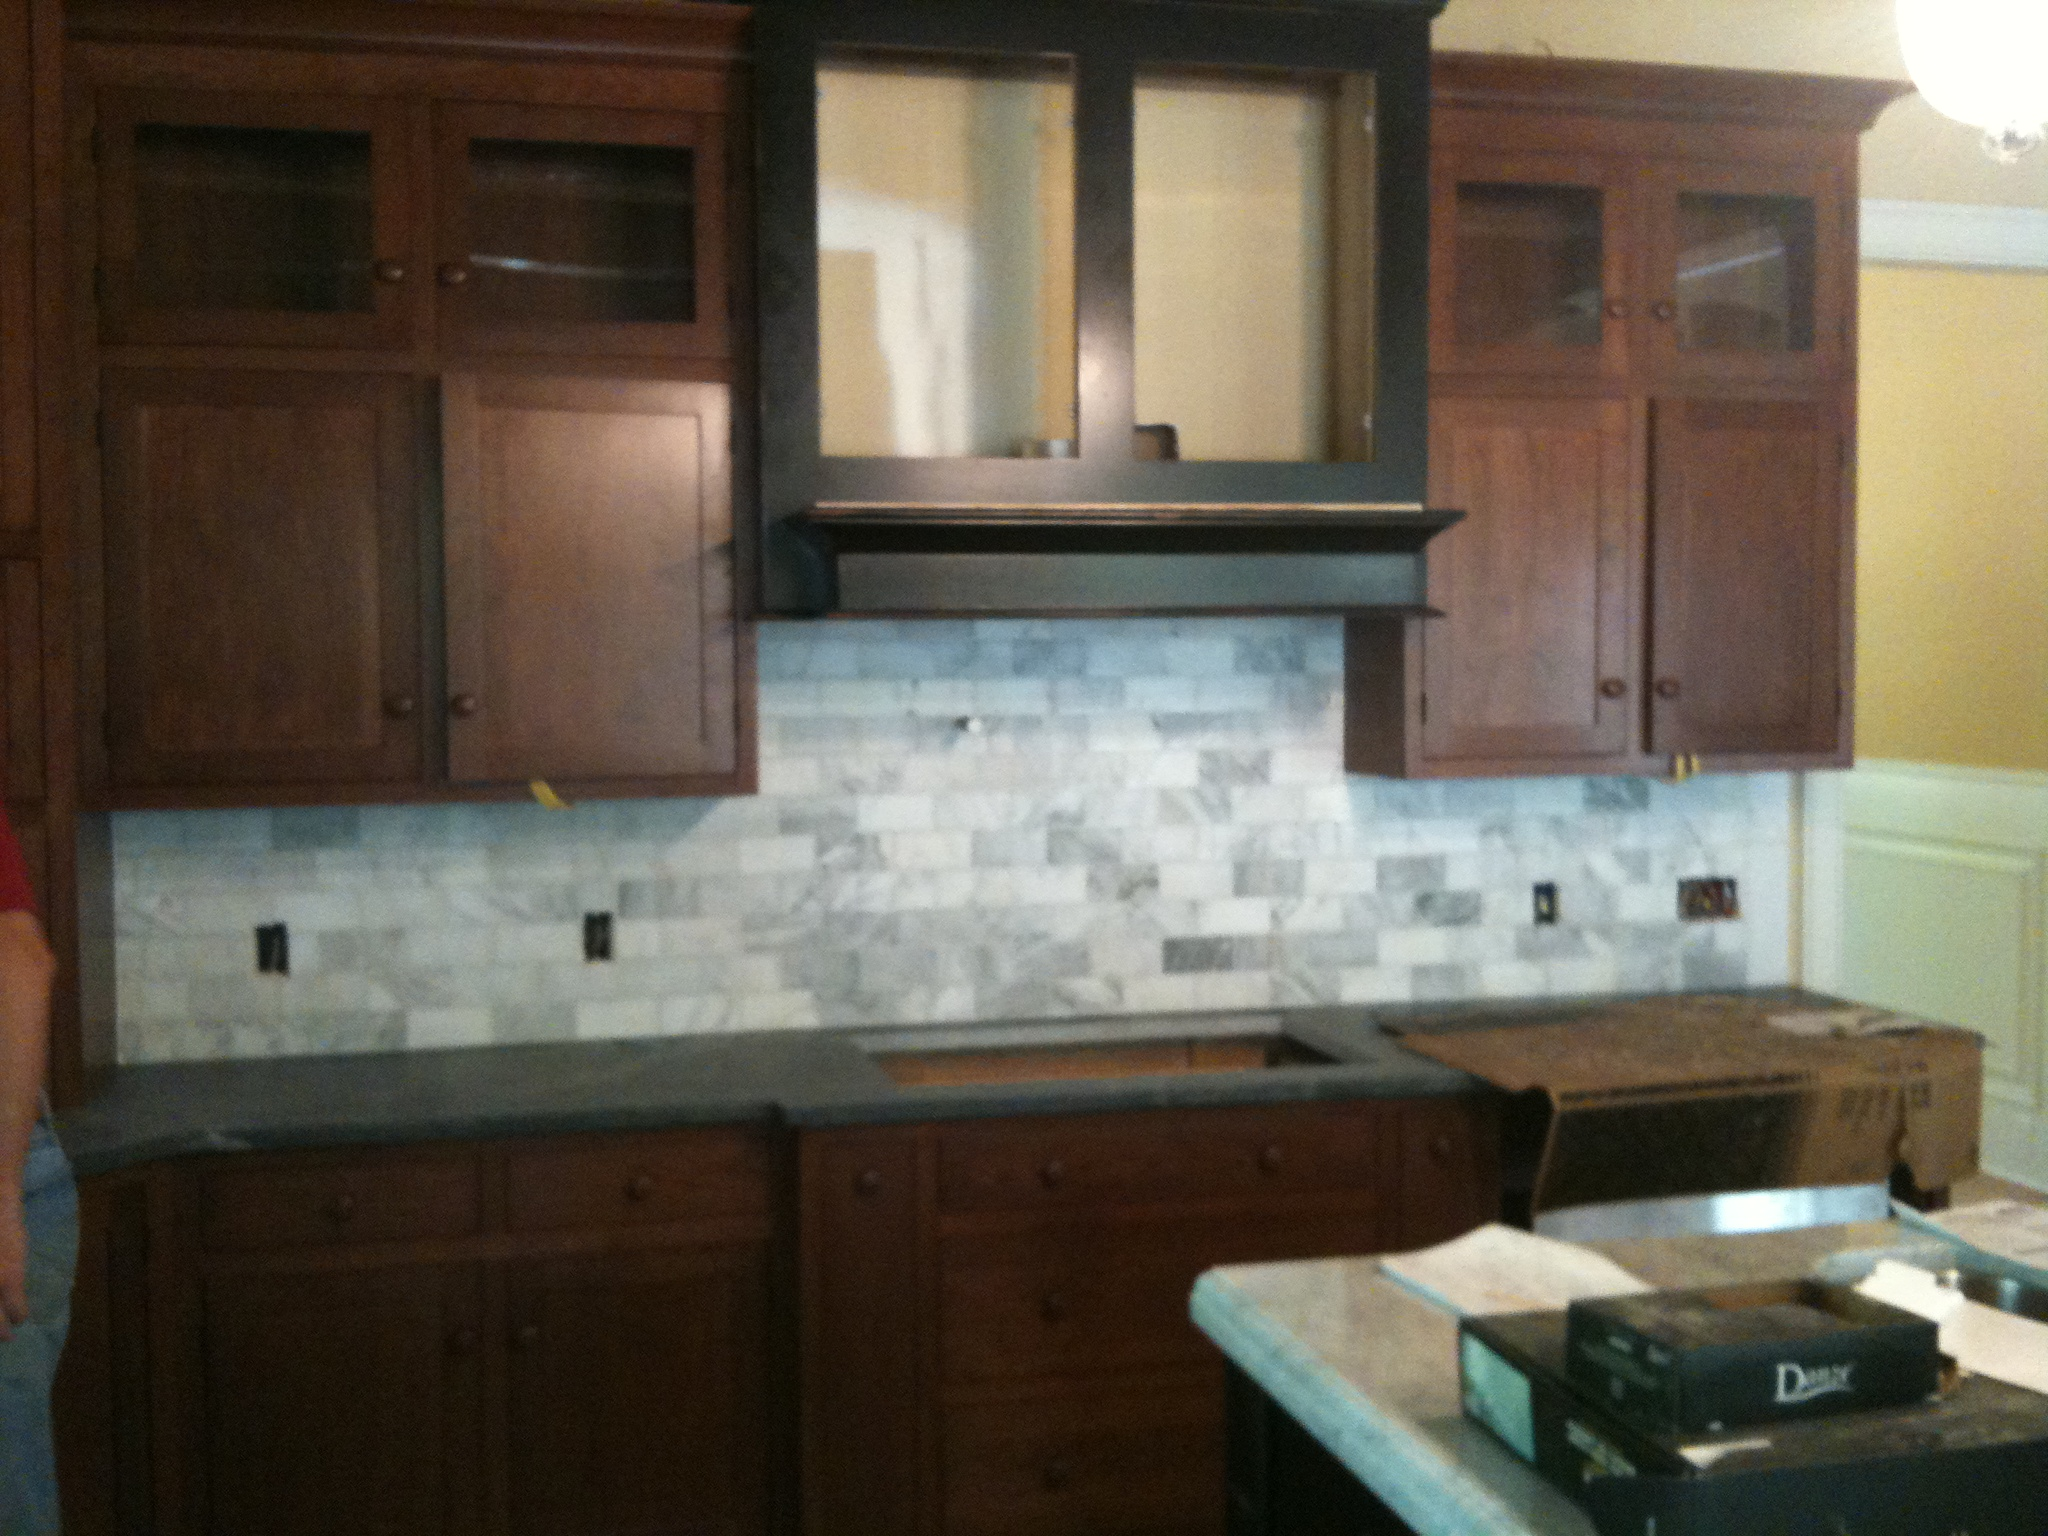 kitchen cabinets kitchen remodeling companies kitchen remodeling contractor in Atlanta